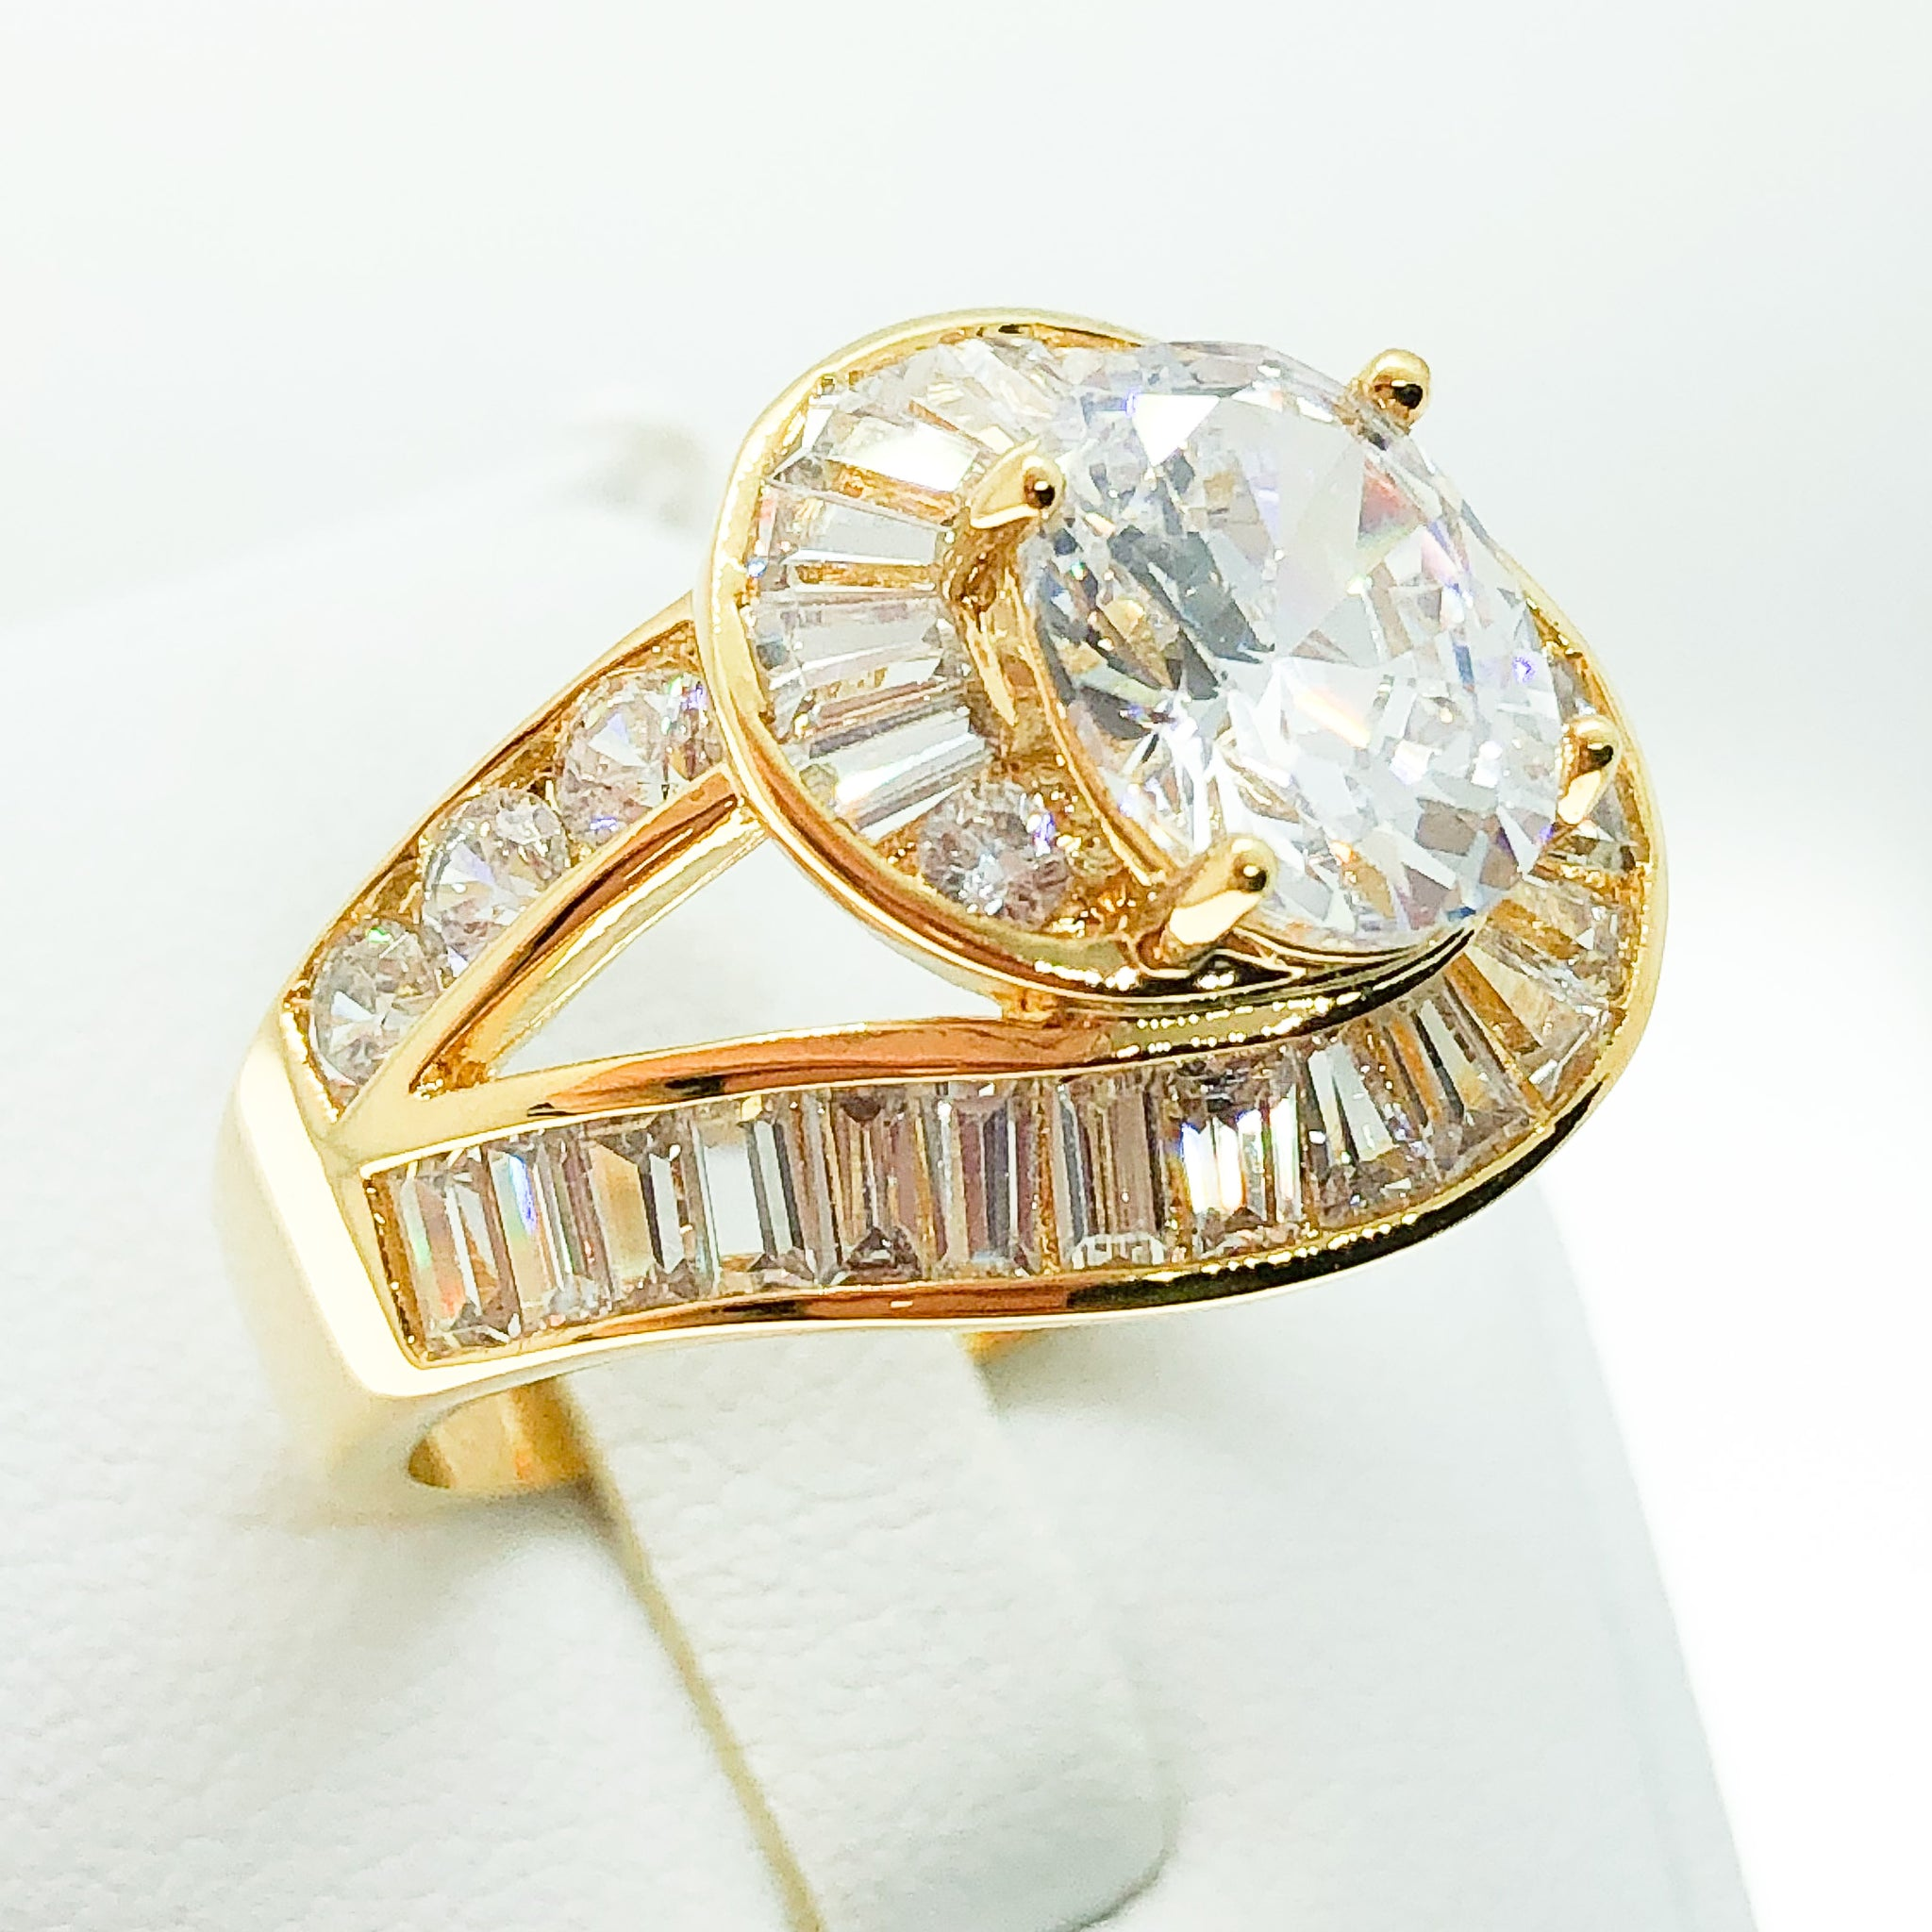 ID:R2465 Women Vintage Jewelry 18K Yellow Gold GF Wonderful Engagement Wedding Diamonique Solitaire Ring With Accent